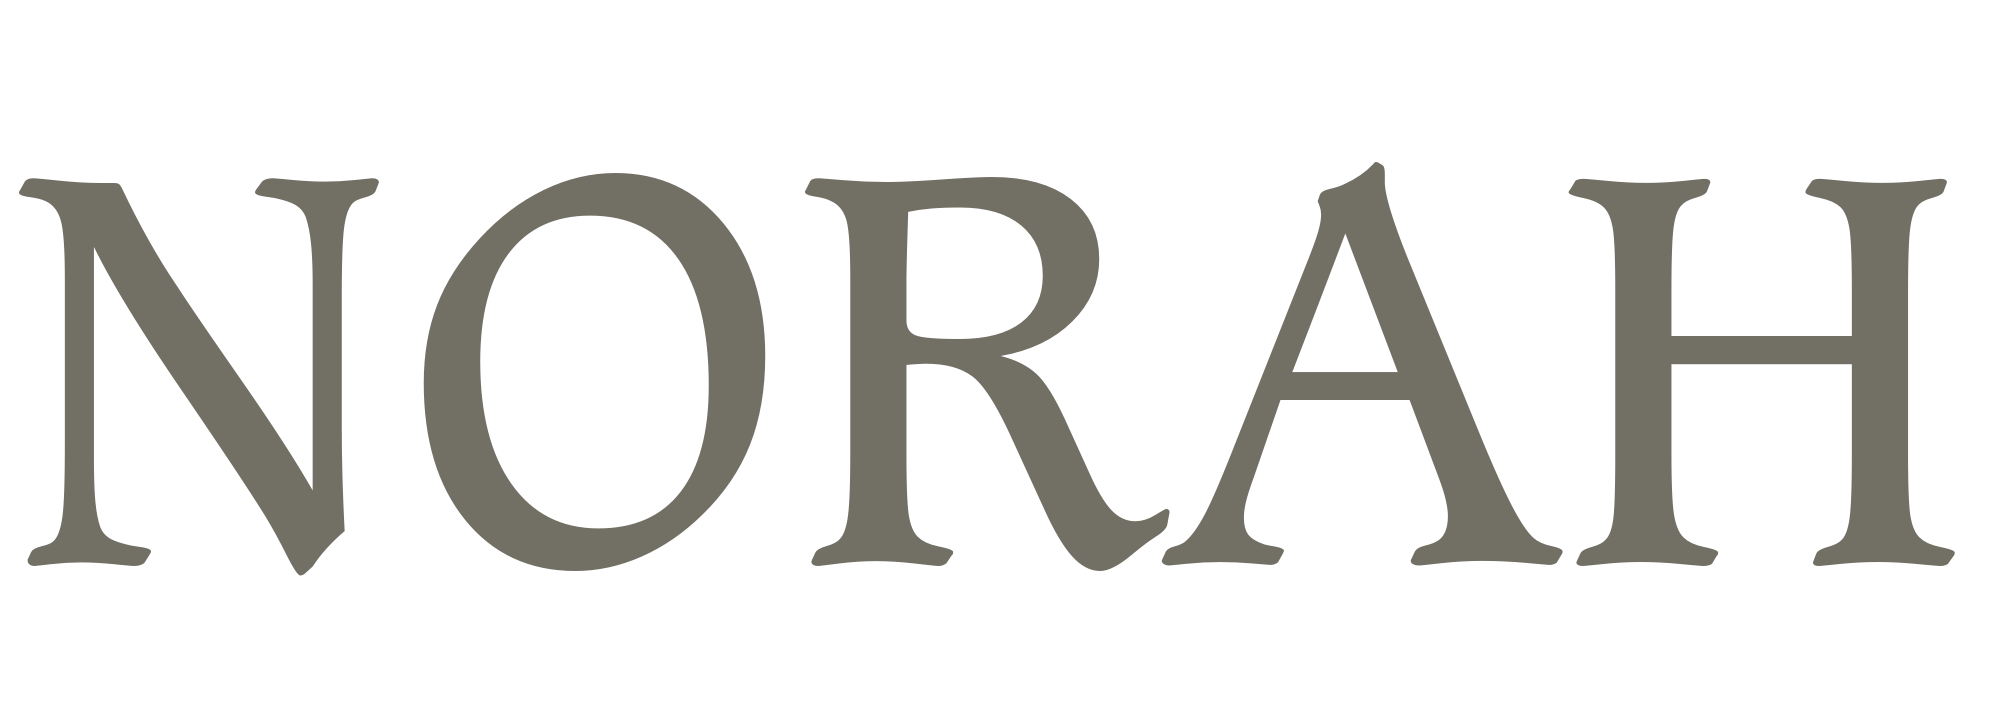 Norah - Name's Meaning of Norah